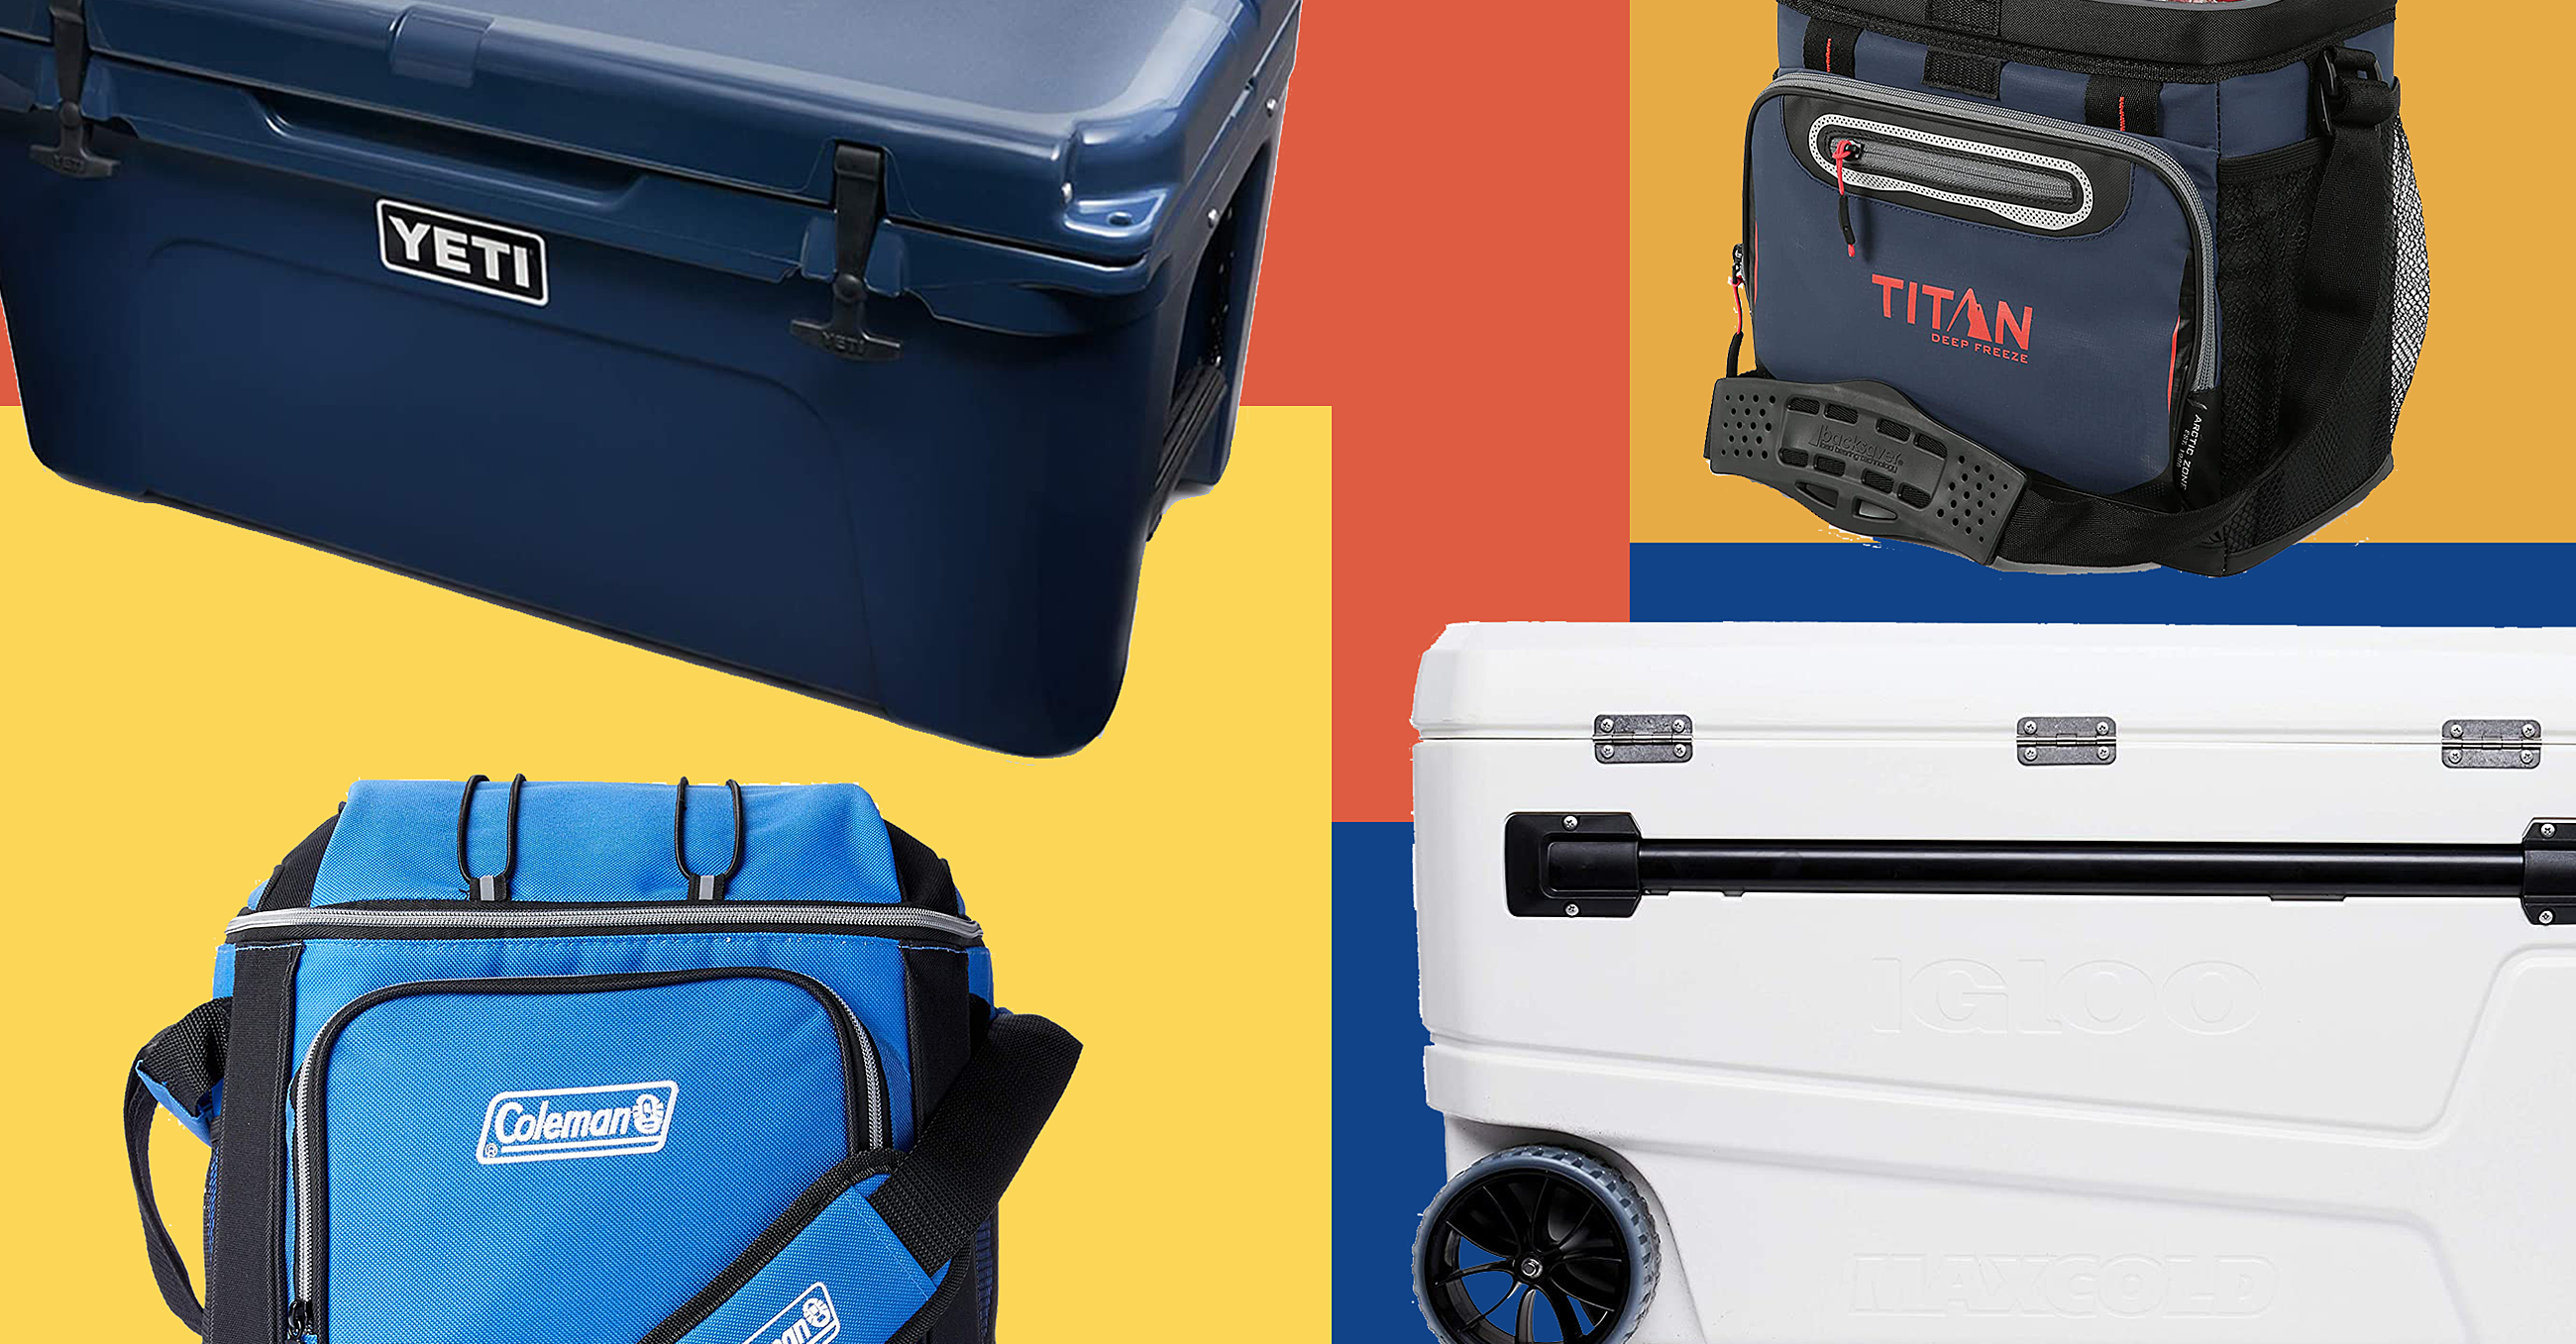 13 Best Coolers You Can Buy, According to Thousands of Reviews